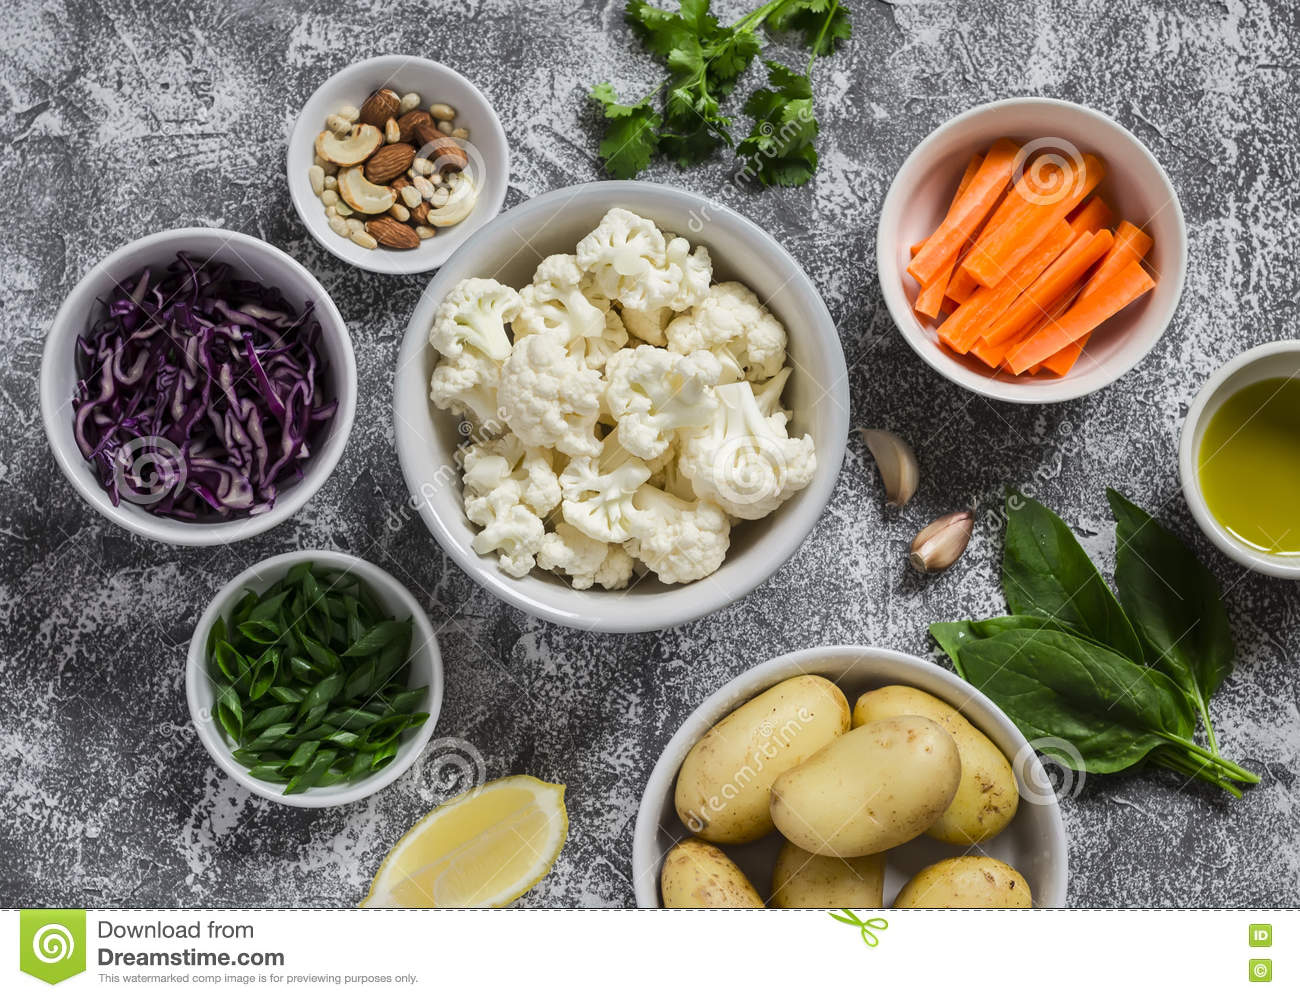 Variety of fresh vegetables in bowls - potatoes, red and cauliflower, spinach, green onions, carrots, nuts, olive oil, cilantro.